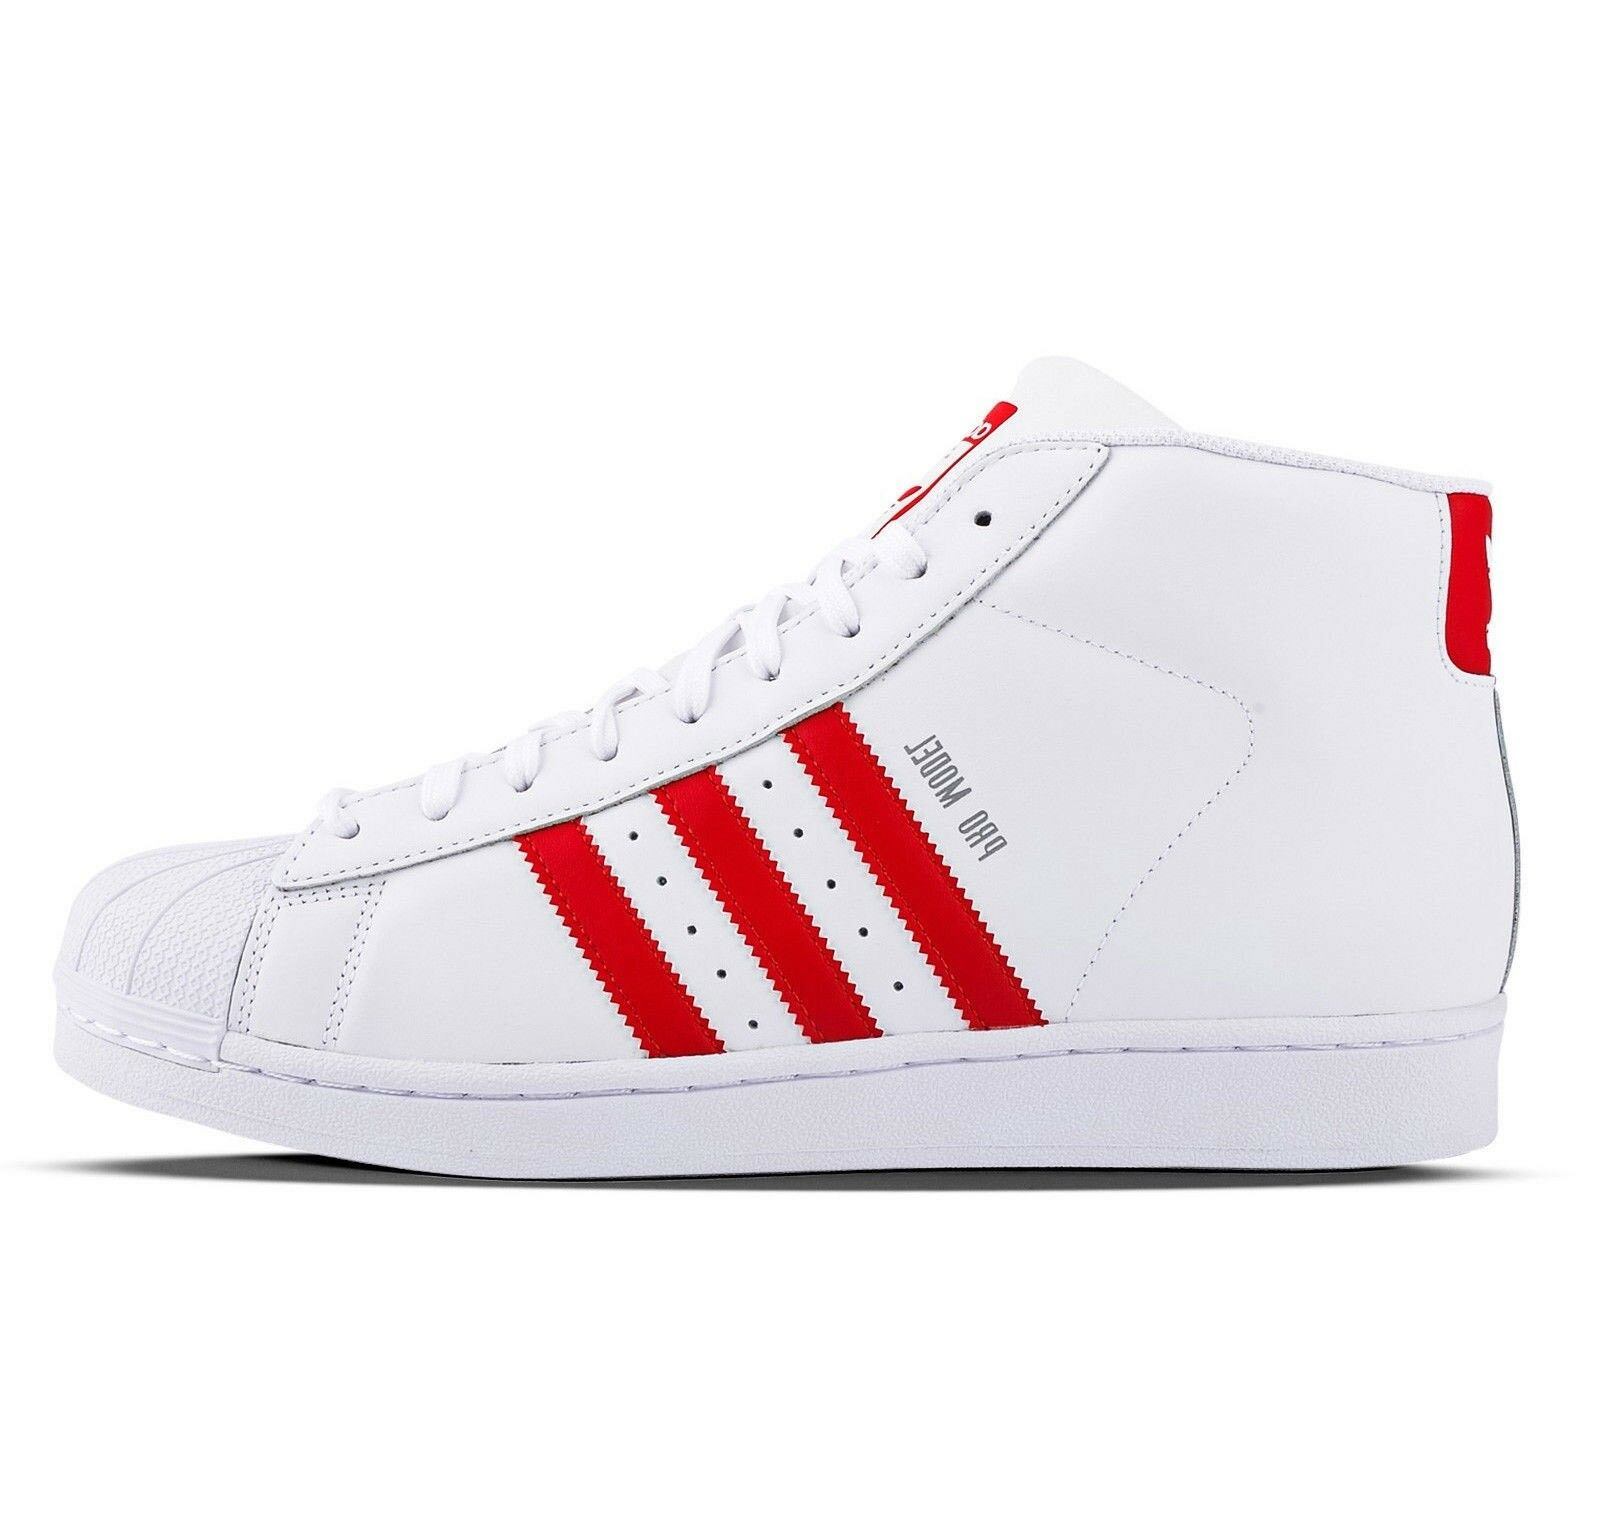 Adidas Pro Model S75928 Leather Shoes White Red Lace Up Casual Hi Top  Trainers